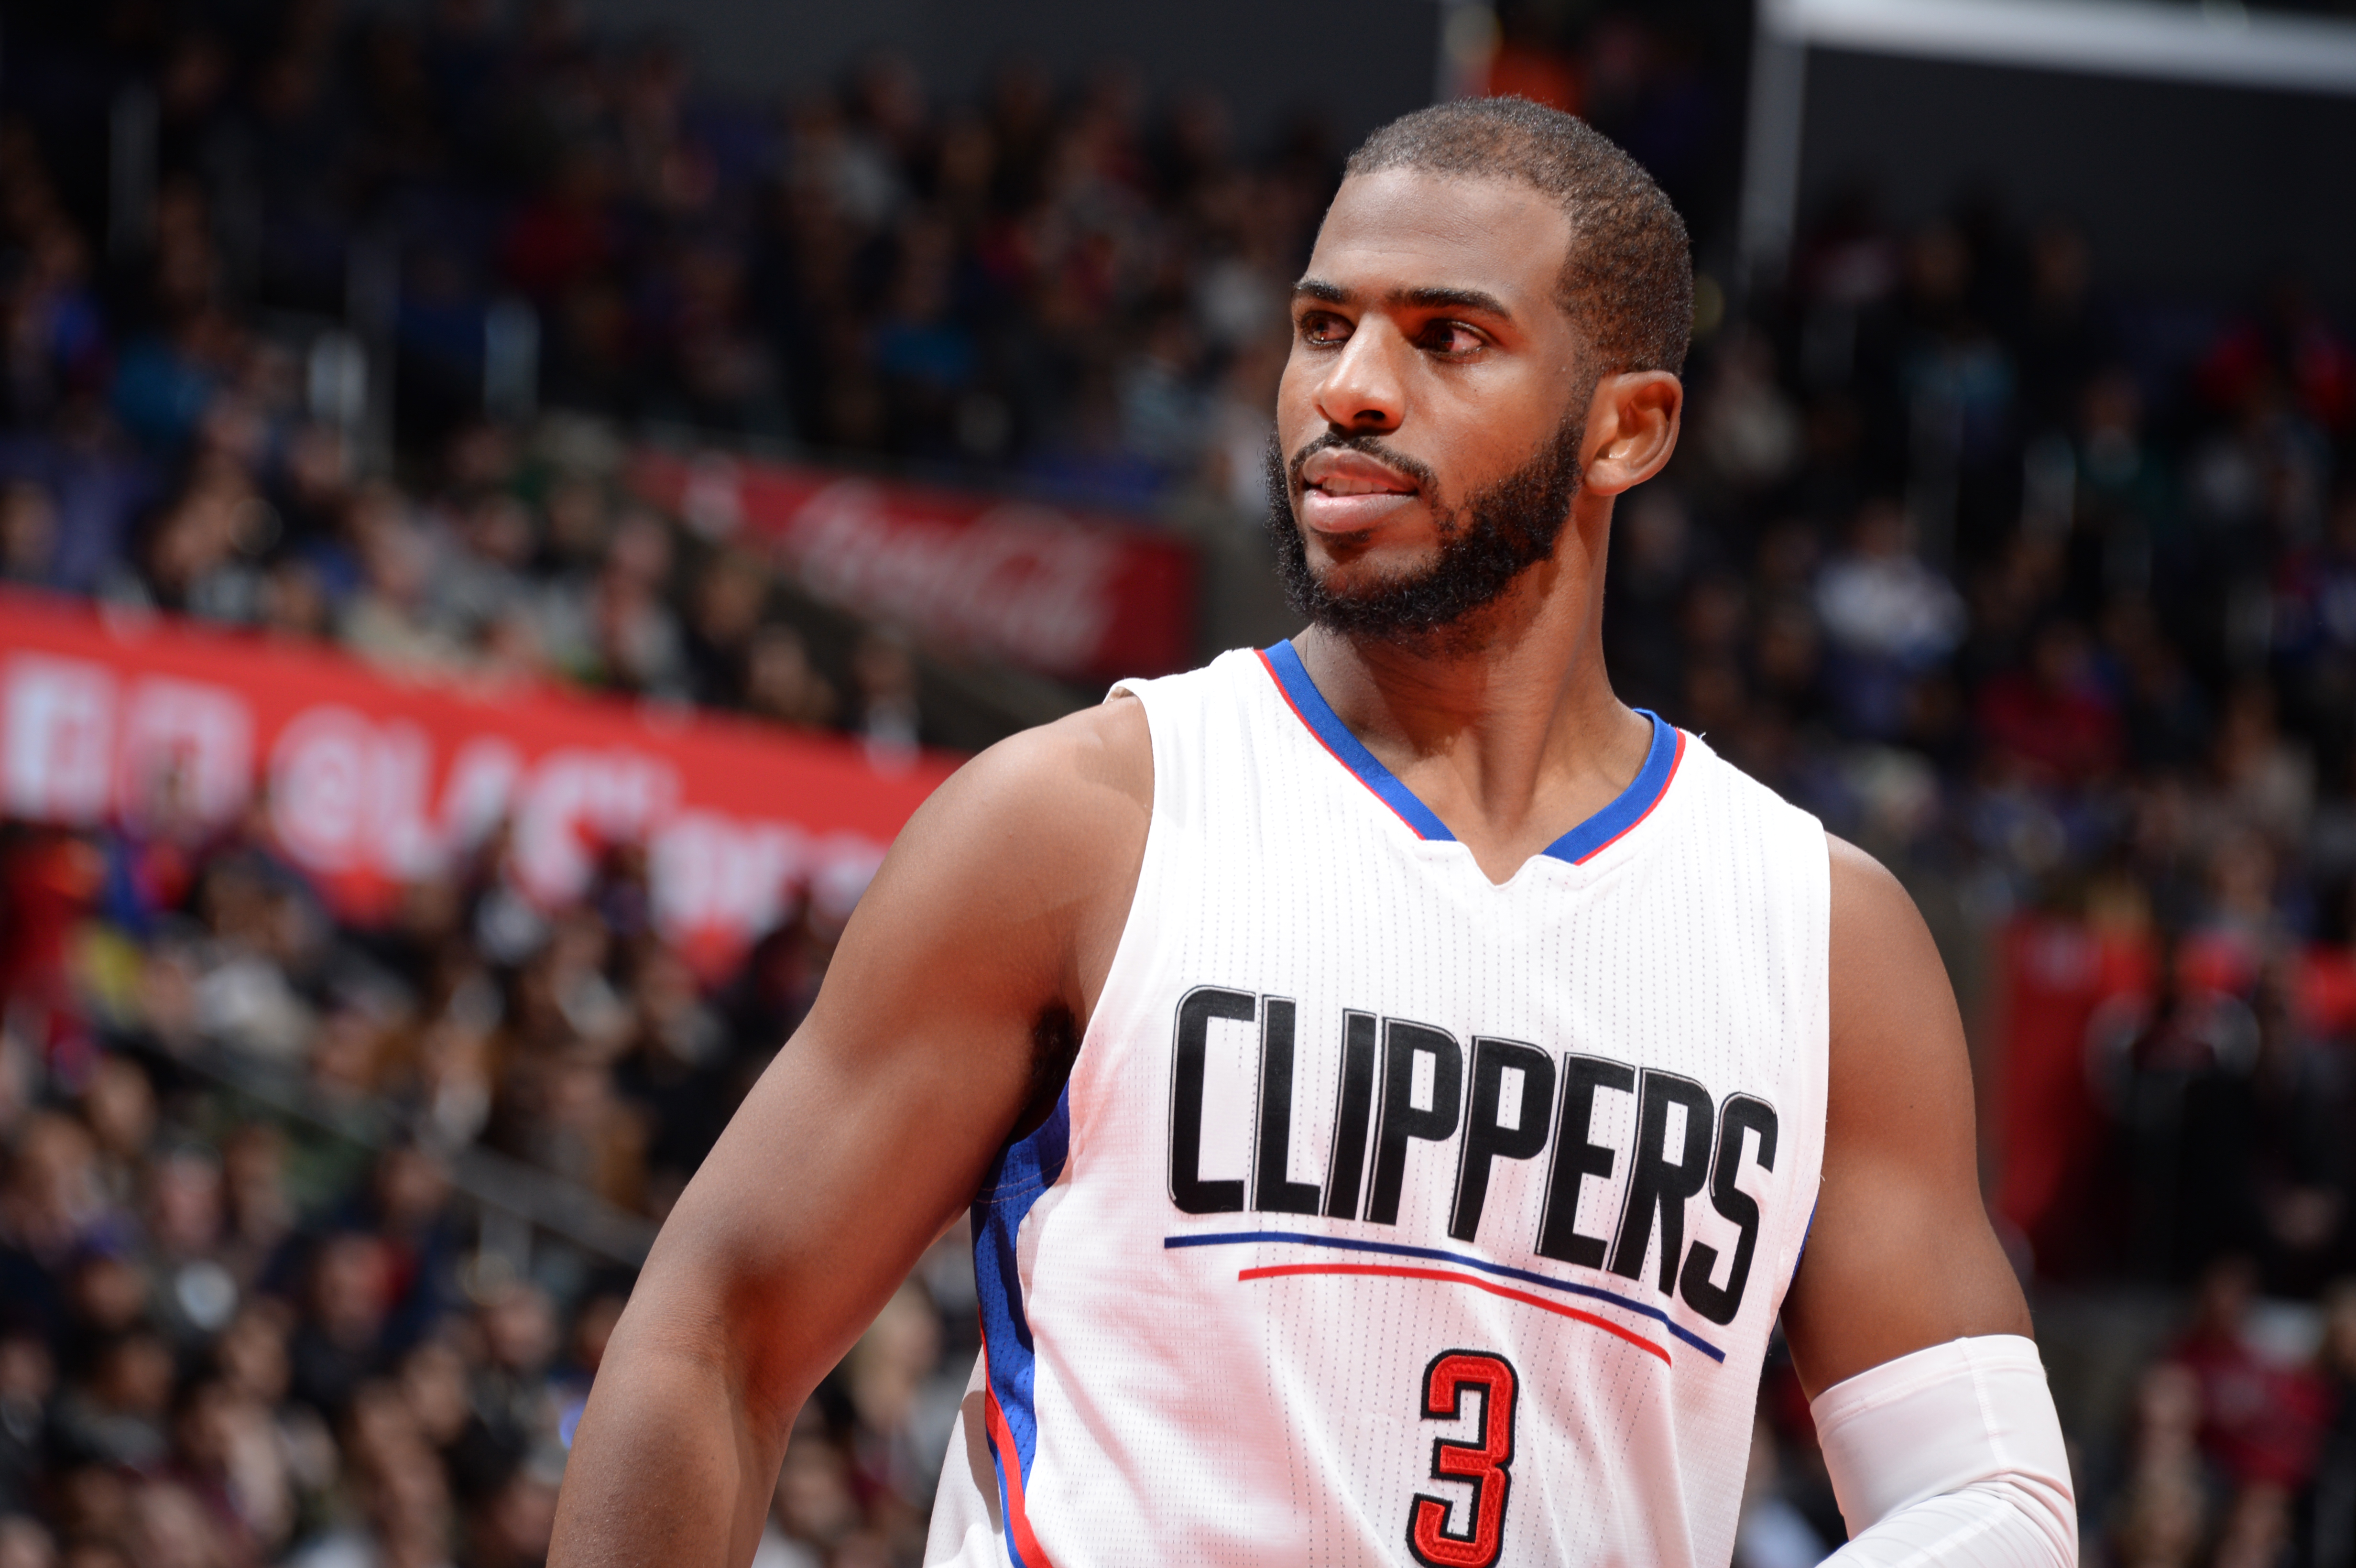 LOS ANGELES, CA - DECEMBER 16: Chris Paul #3 of the Los Angeles Clippers during the game against the Milwaukee Bucks on December 16, 2015 at STAPLES Center in Los Angeles, California. (Photo by Andrew Bernstein/NBAE via Getty Images)